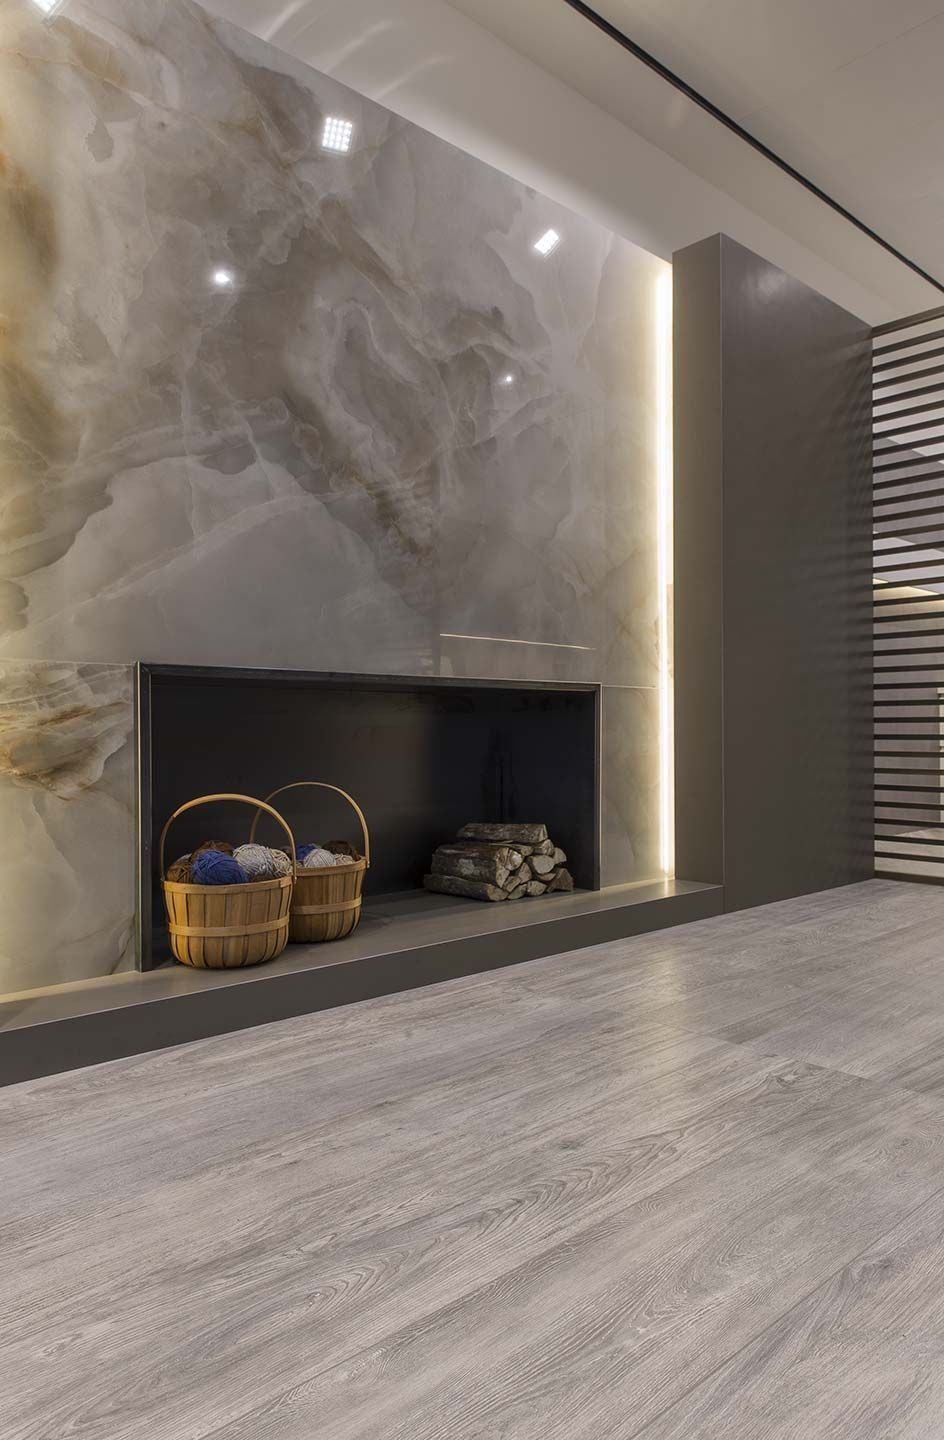 Ceramic Tile Made In Italy Rex Showroom Within The Florim Gallery